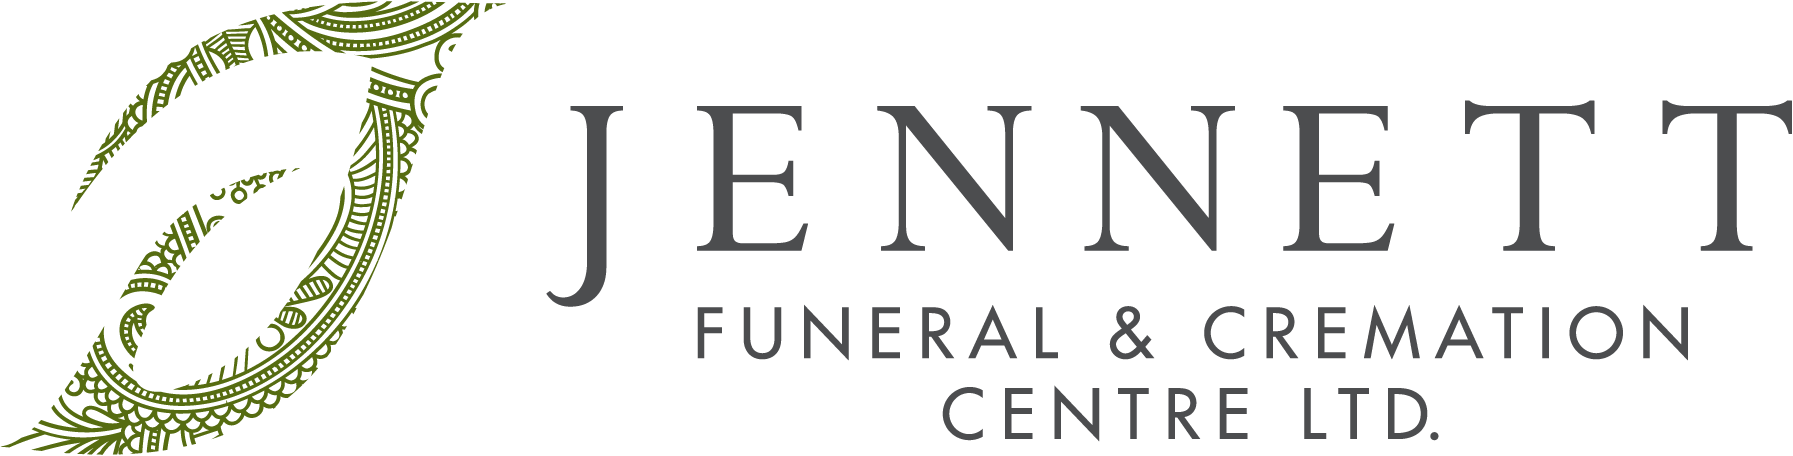 Jennett Funeral & Cremation Centre Ltd.